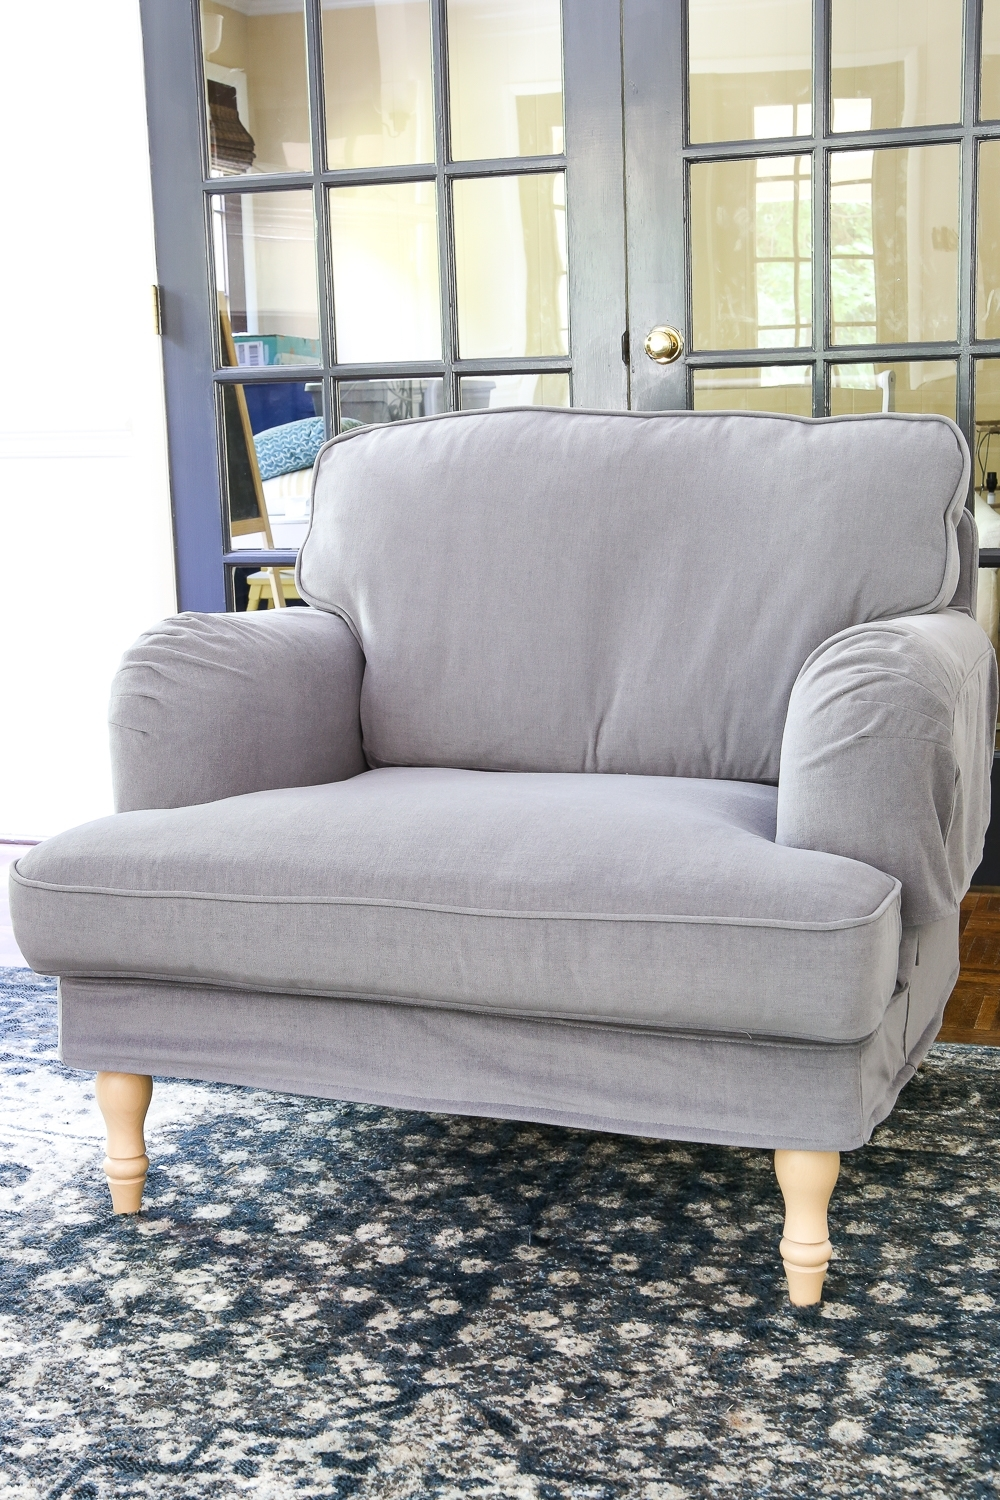 Ikea's New Sofa And Chairs And How To Keep Them Clean – Bless'er House In Fashionable Sofa With Chairs (Gallery 18 of 20)